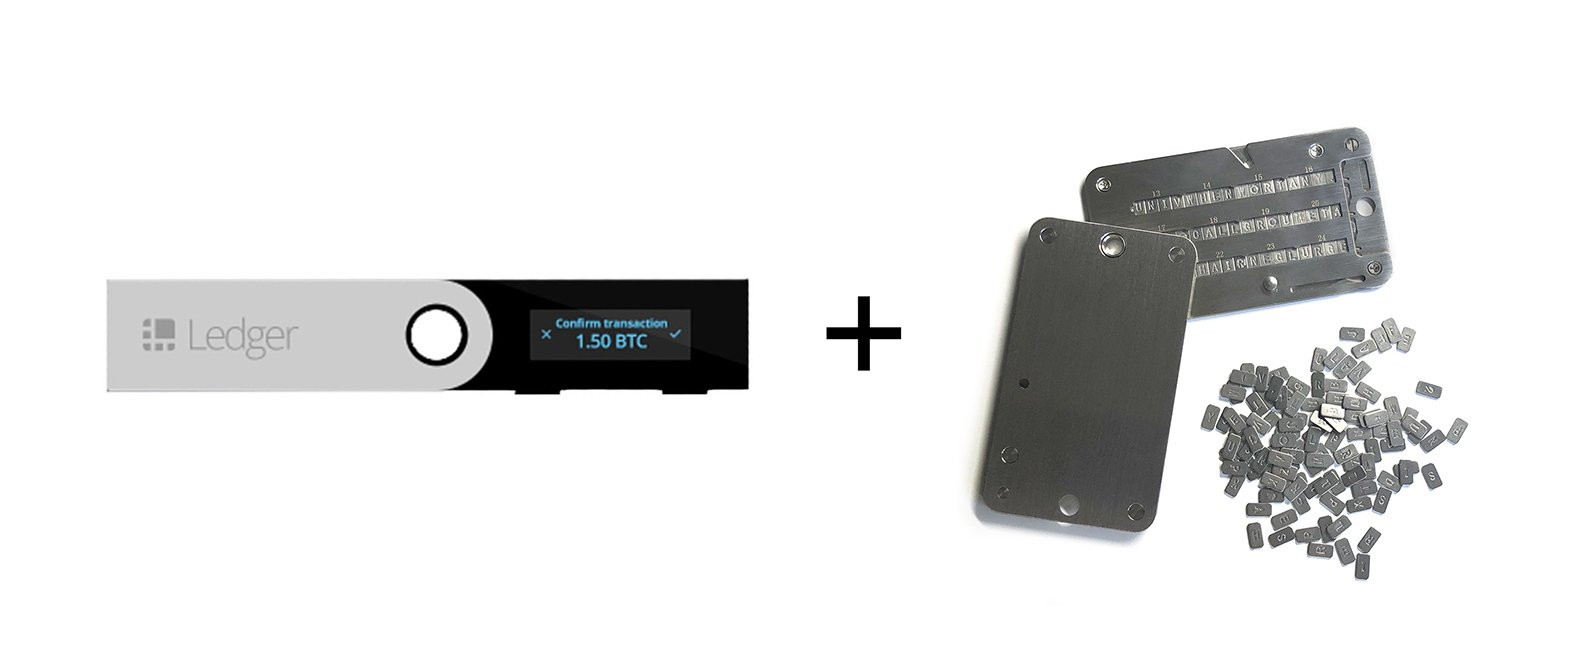 Ledger Nano S Cryptocurrency Hardware Wallet with SteelWallet Cold Seed Storage (2 items) by Ledger (Image #2)